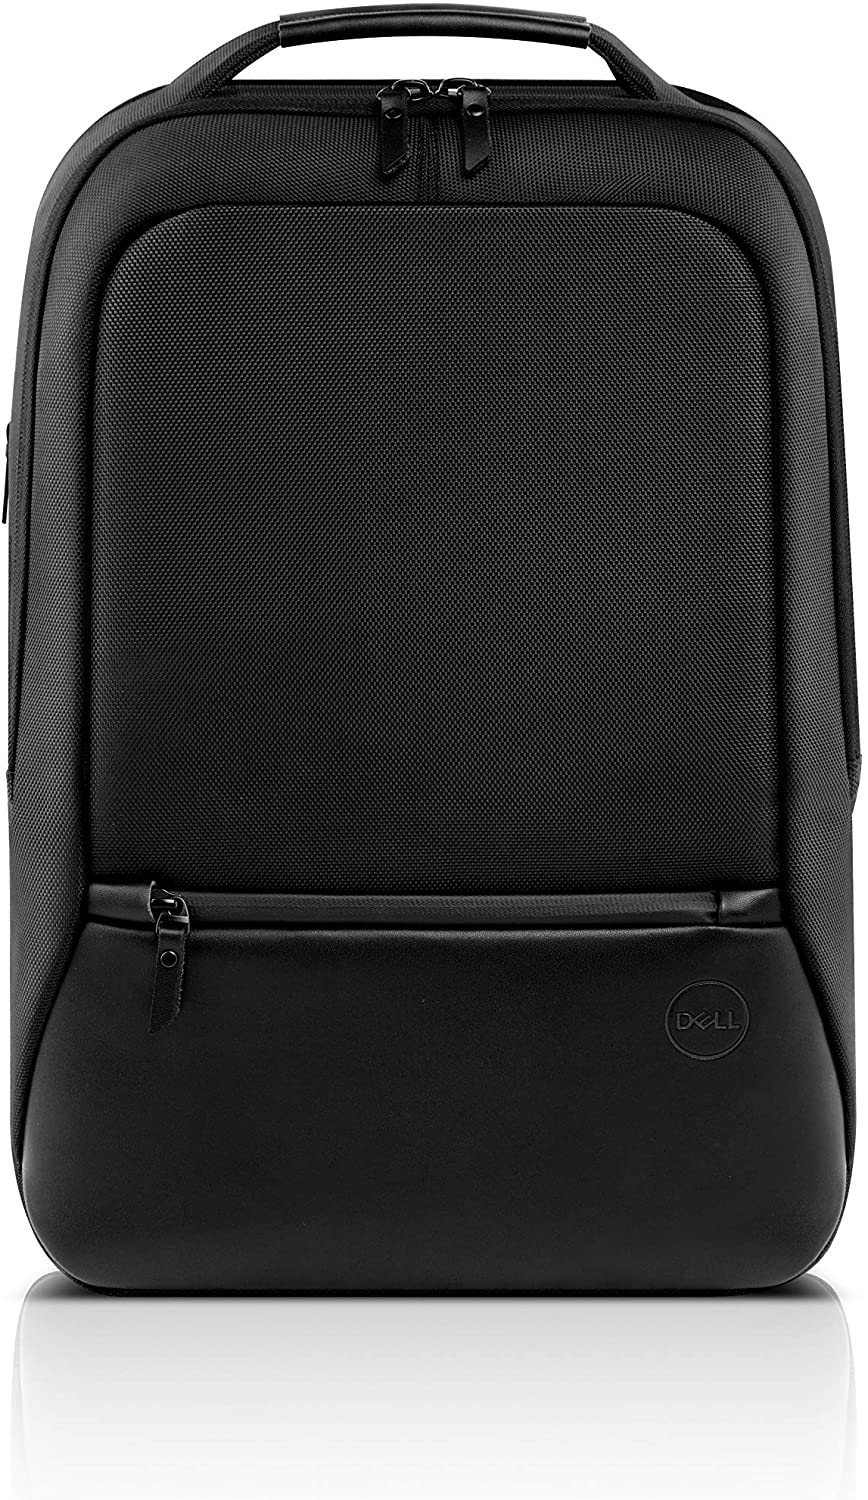 Dell Premier Slim Backpack 15 PE1520PS Fits Most laptops, PE-BPS-15-20 (PE1520PS Fits Most laptops up to 15Inch)